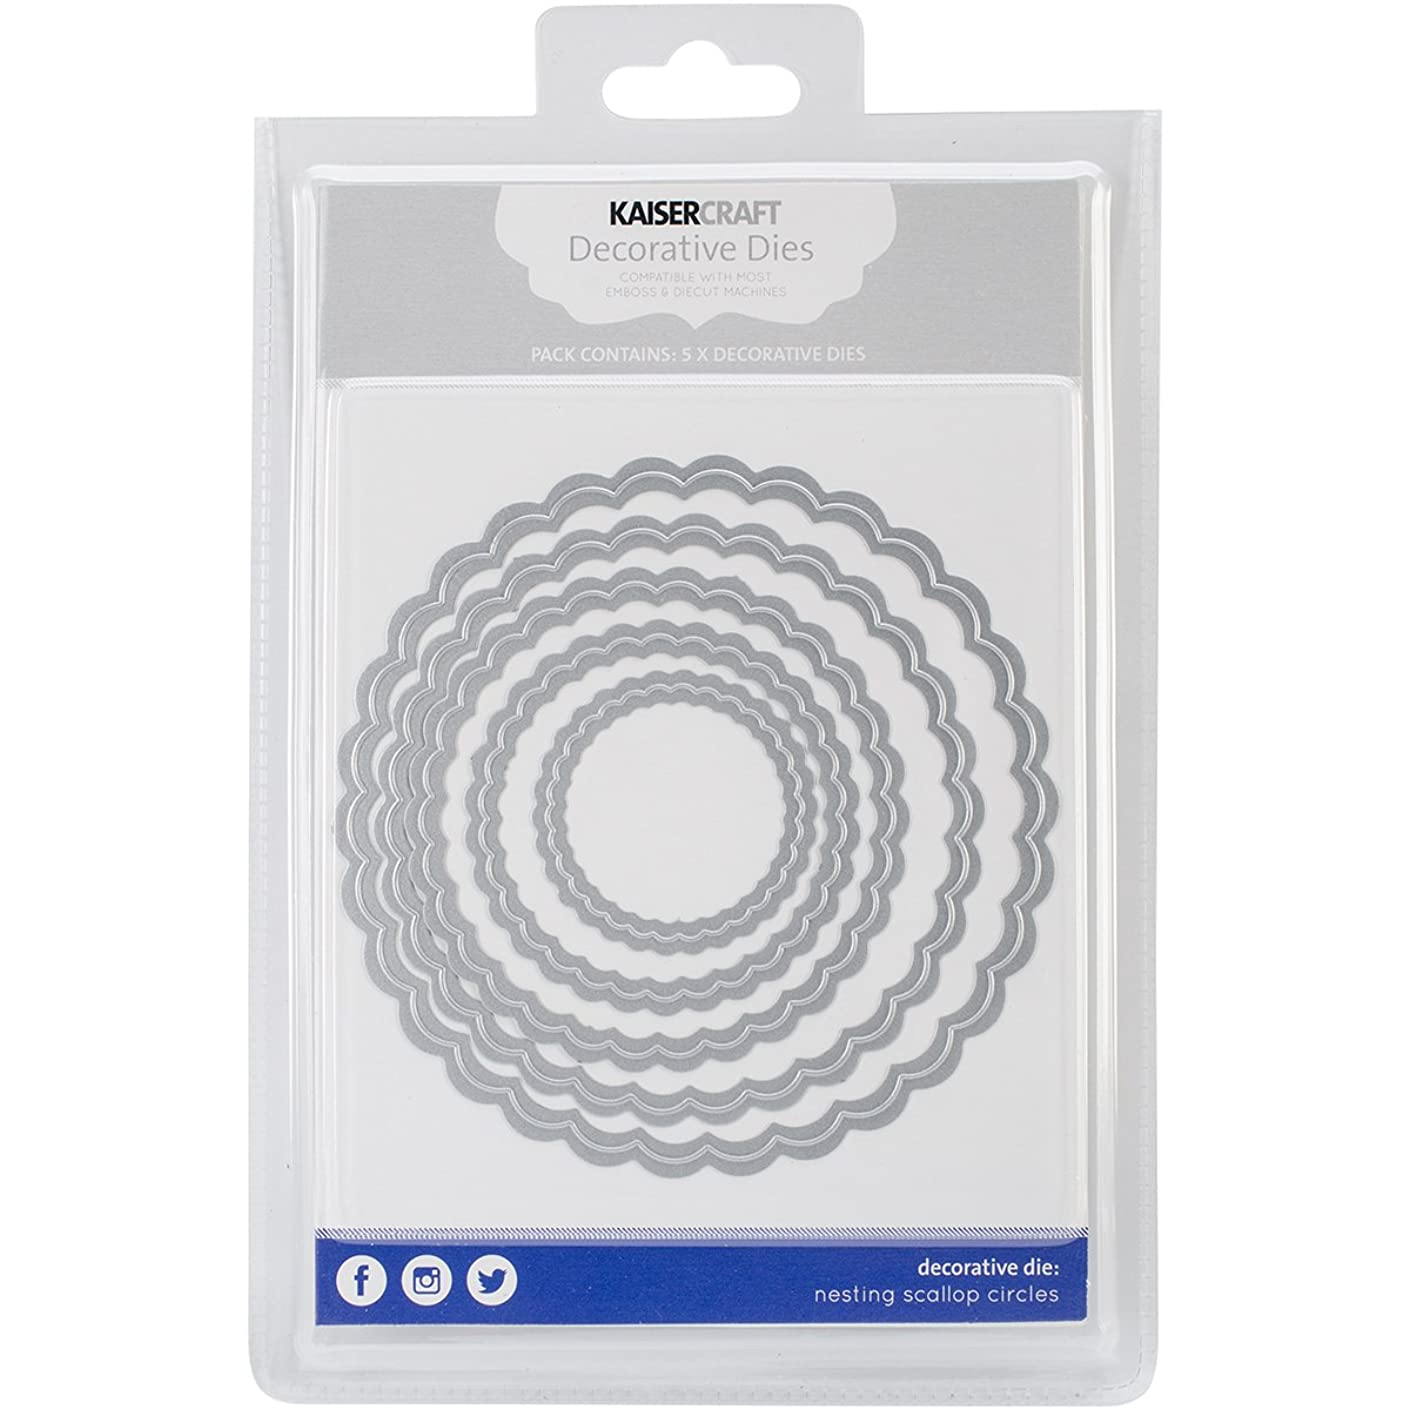 Kaisercraft Nesting Dies-Scallop Circles, 1.75 by 1.75-Inch to 4.75 by 4.75-Inch